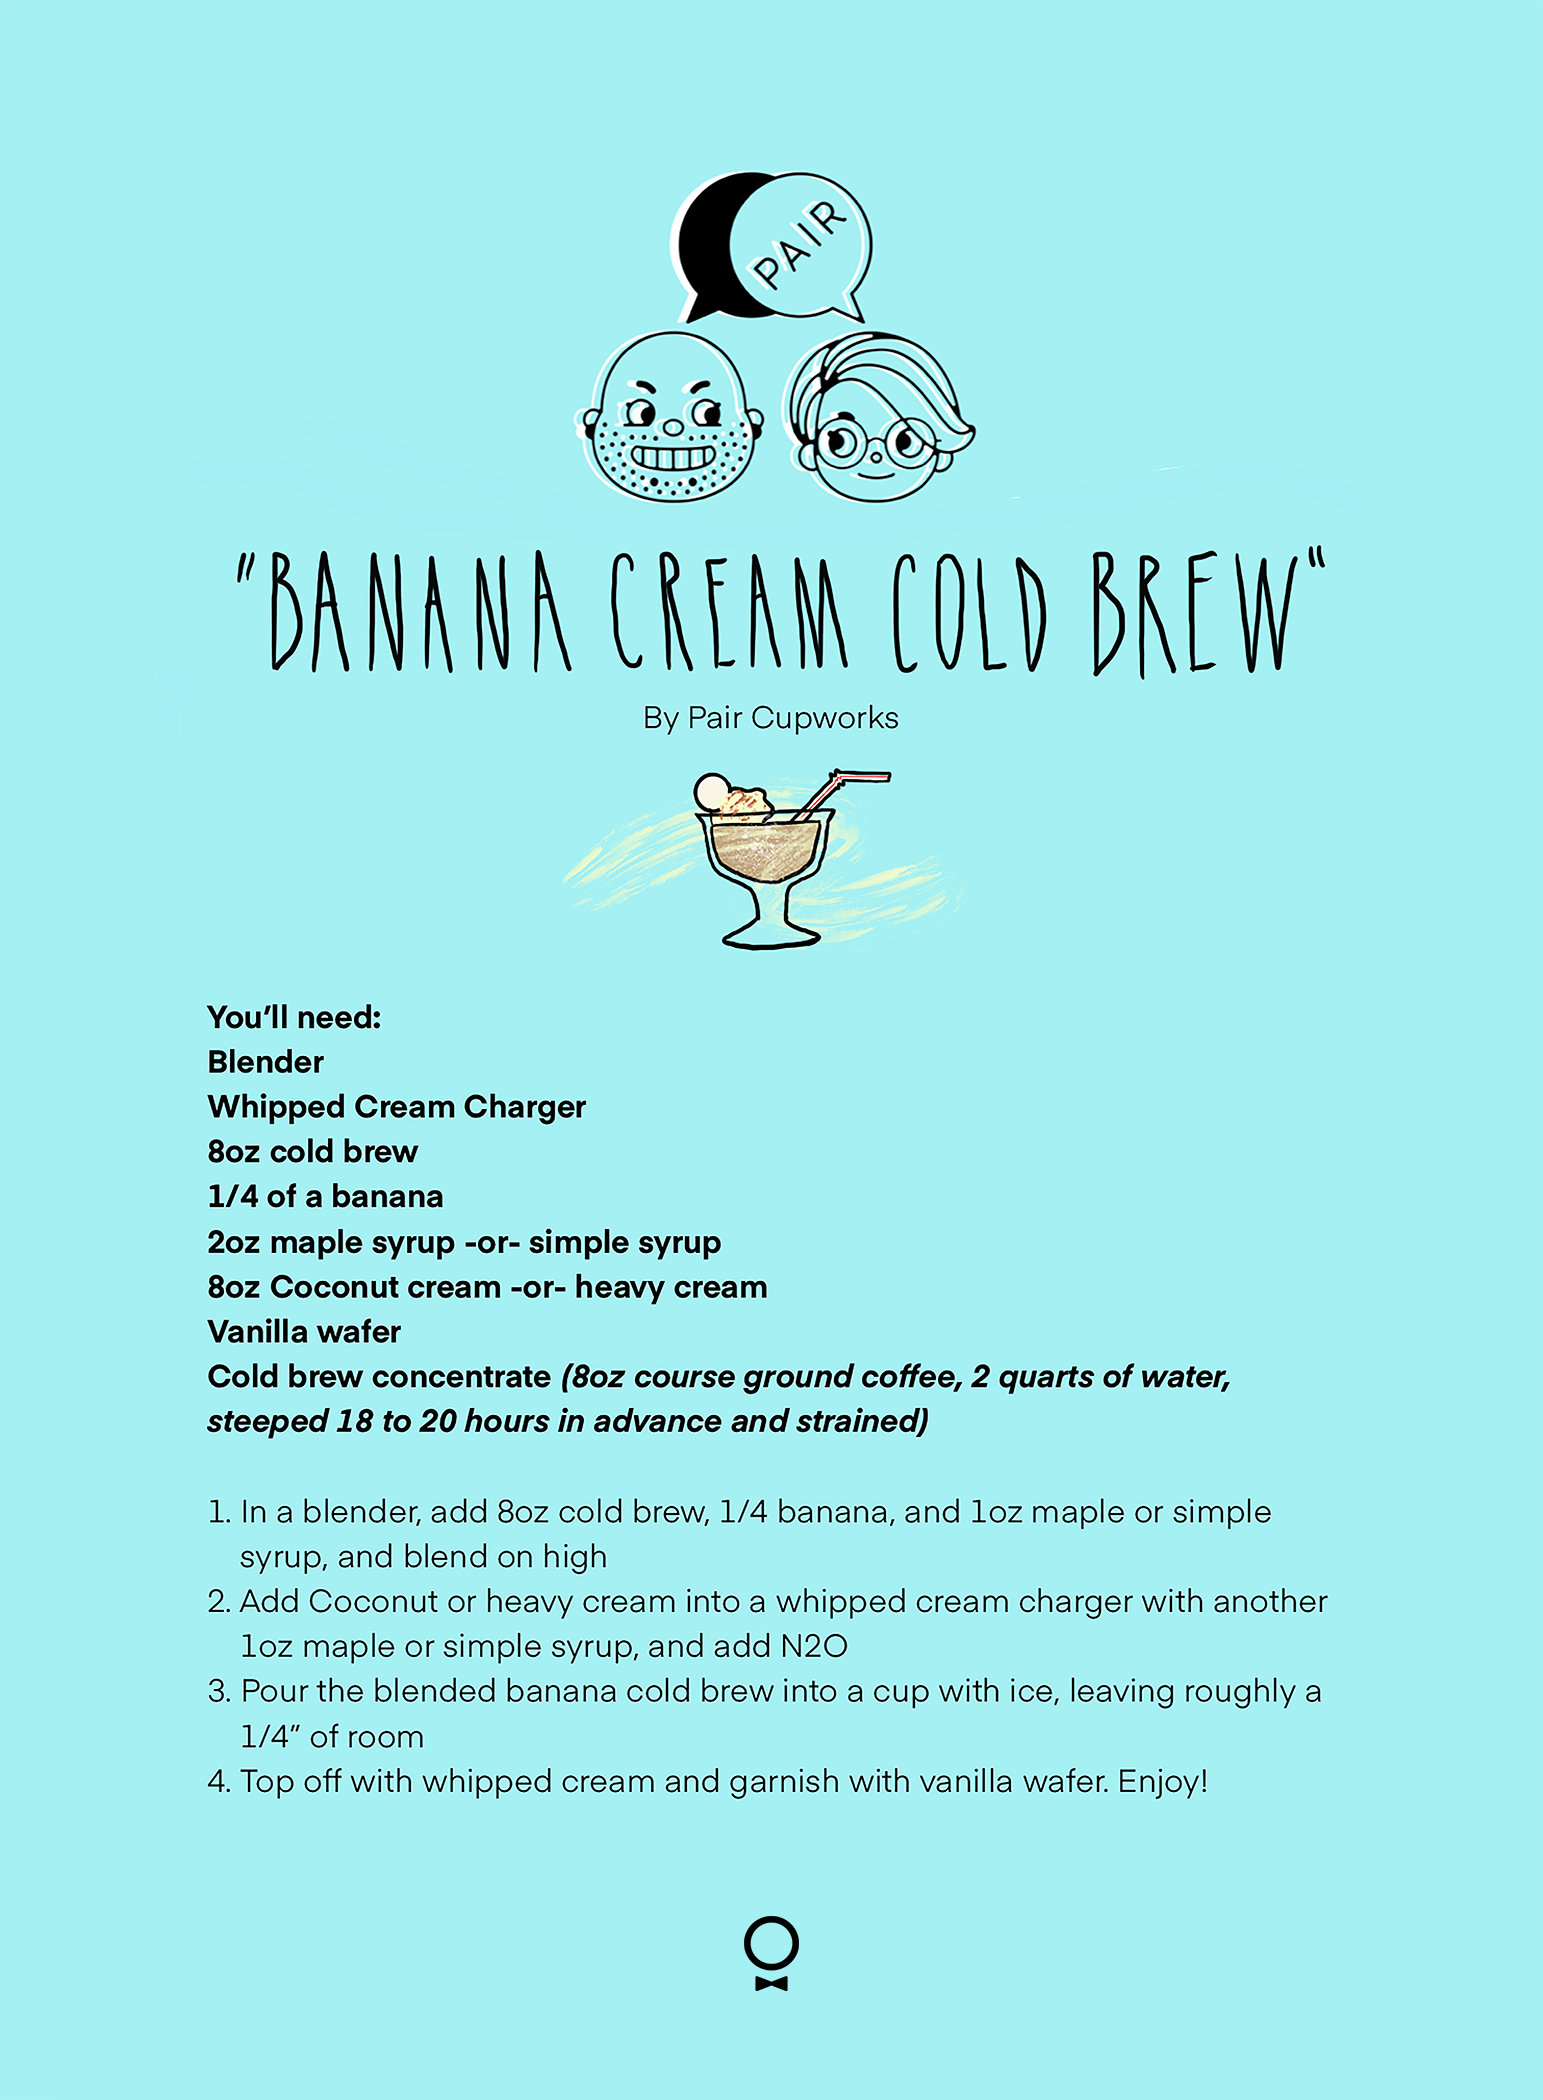 Pair Cupworks Banana Cream Cold Brew Recipe